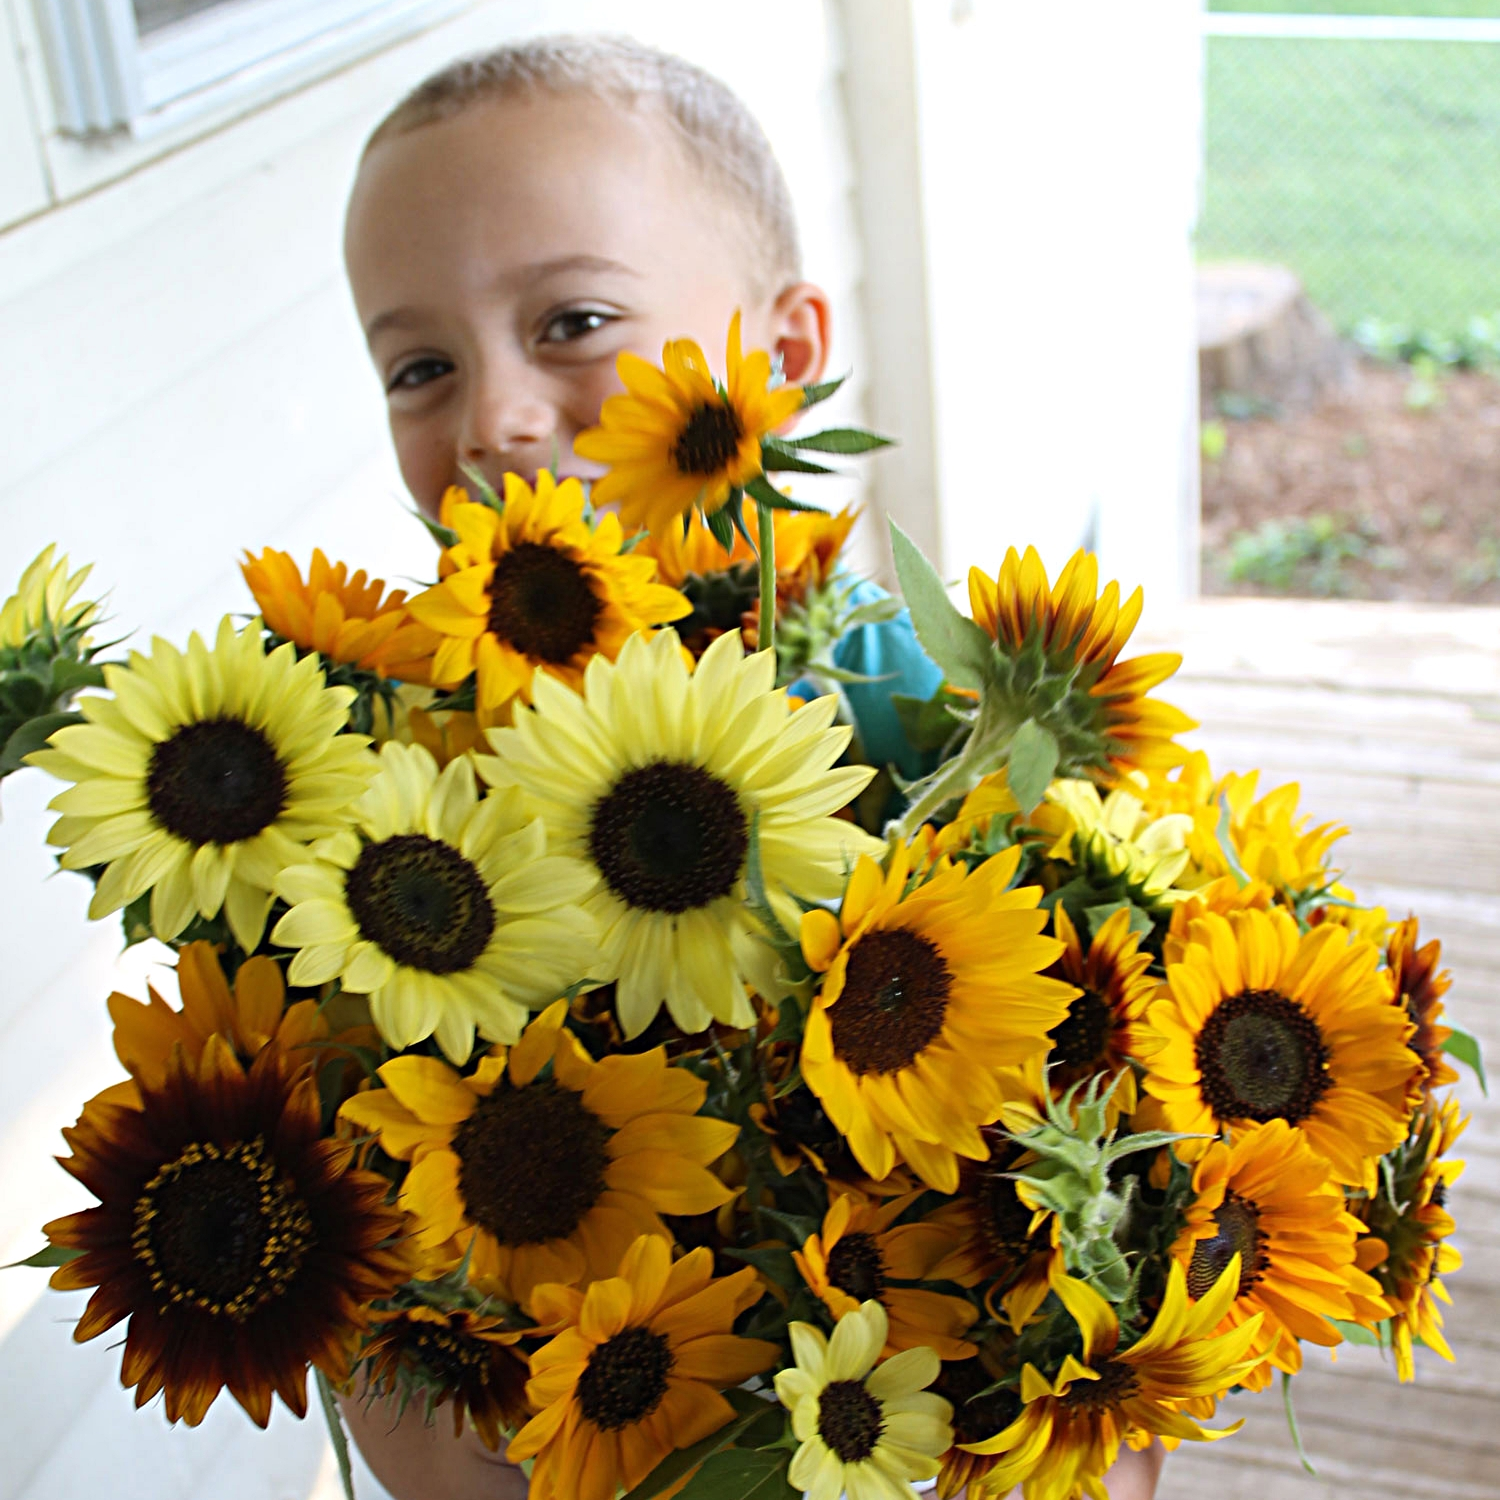 Henry holding an armful of fresh sunflowers.